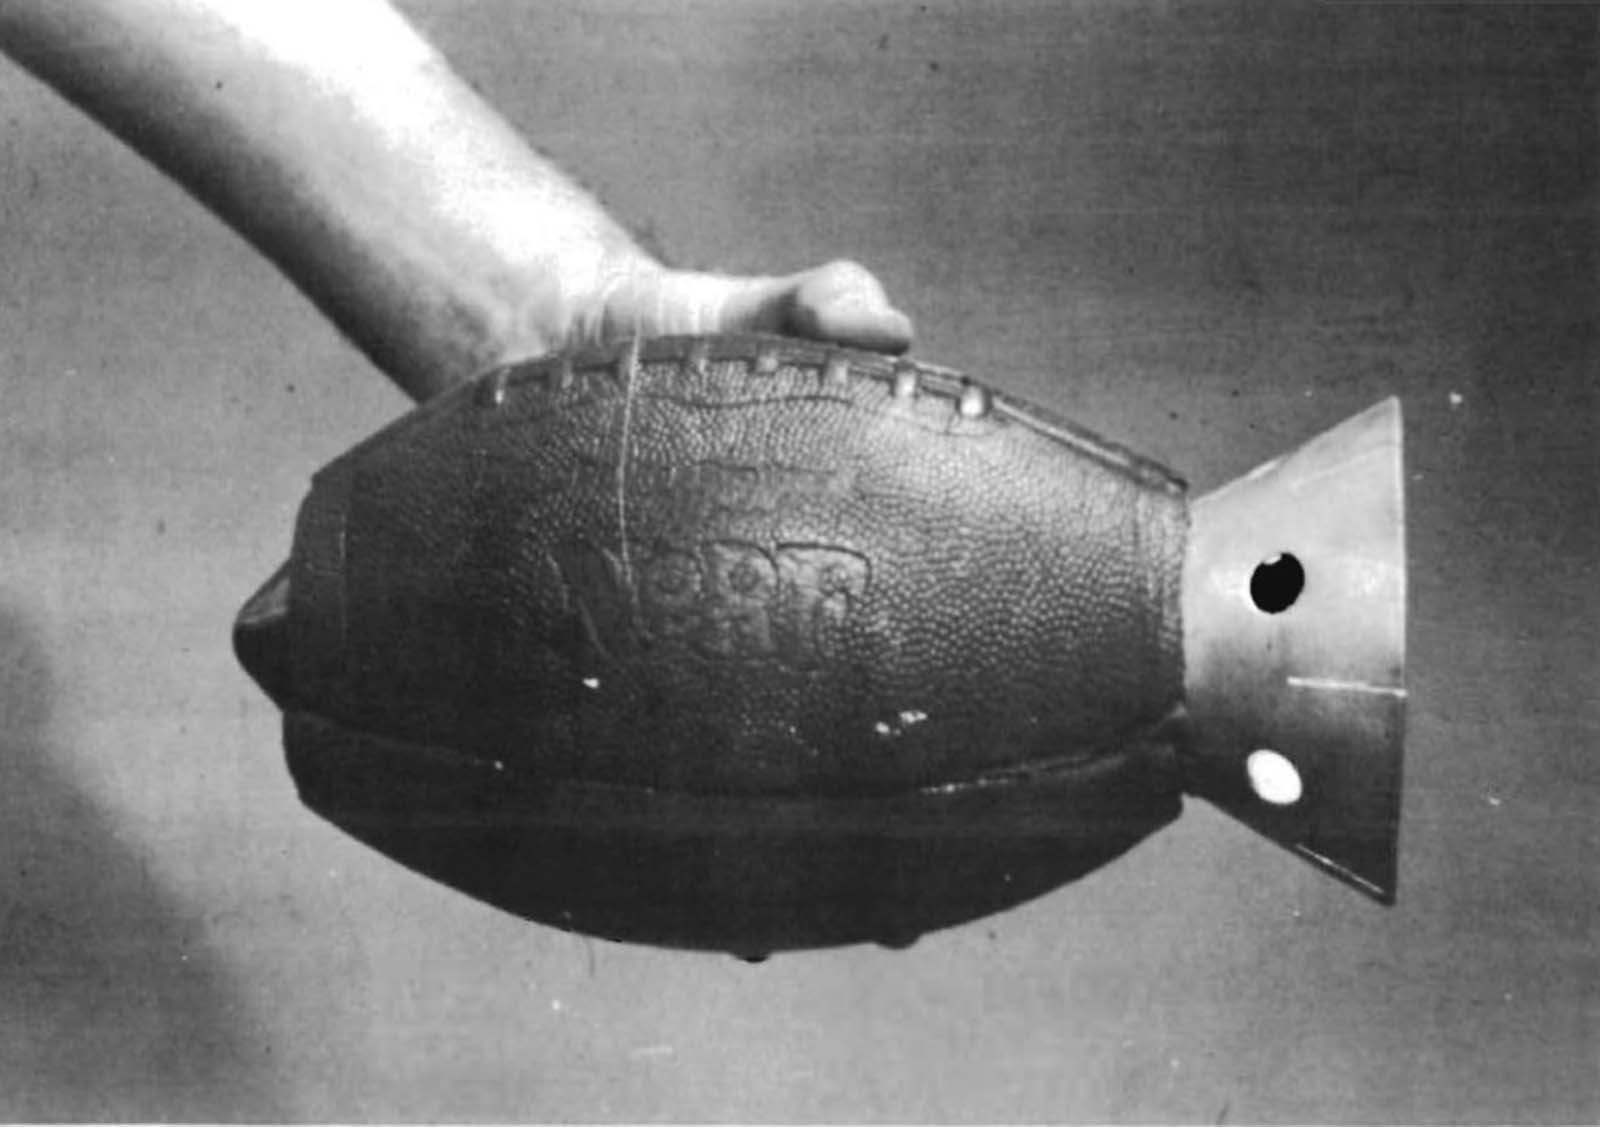 The US Army worked to develop grenades the same size and weight as baseballs in order to take advantage of American's familiarity with the sport.